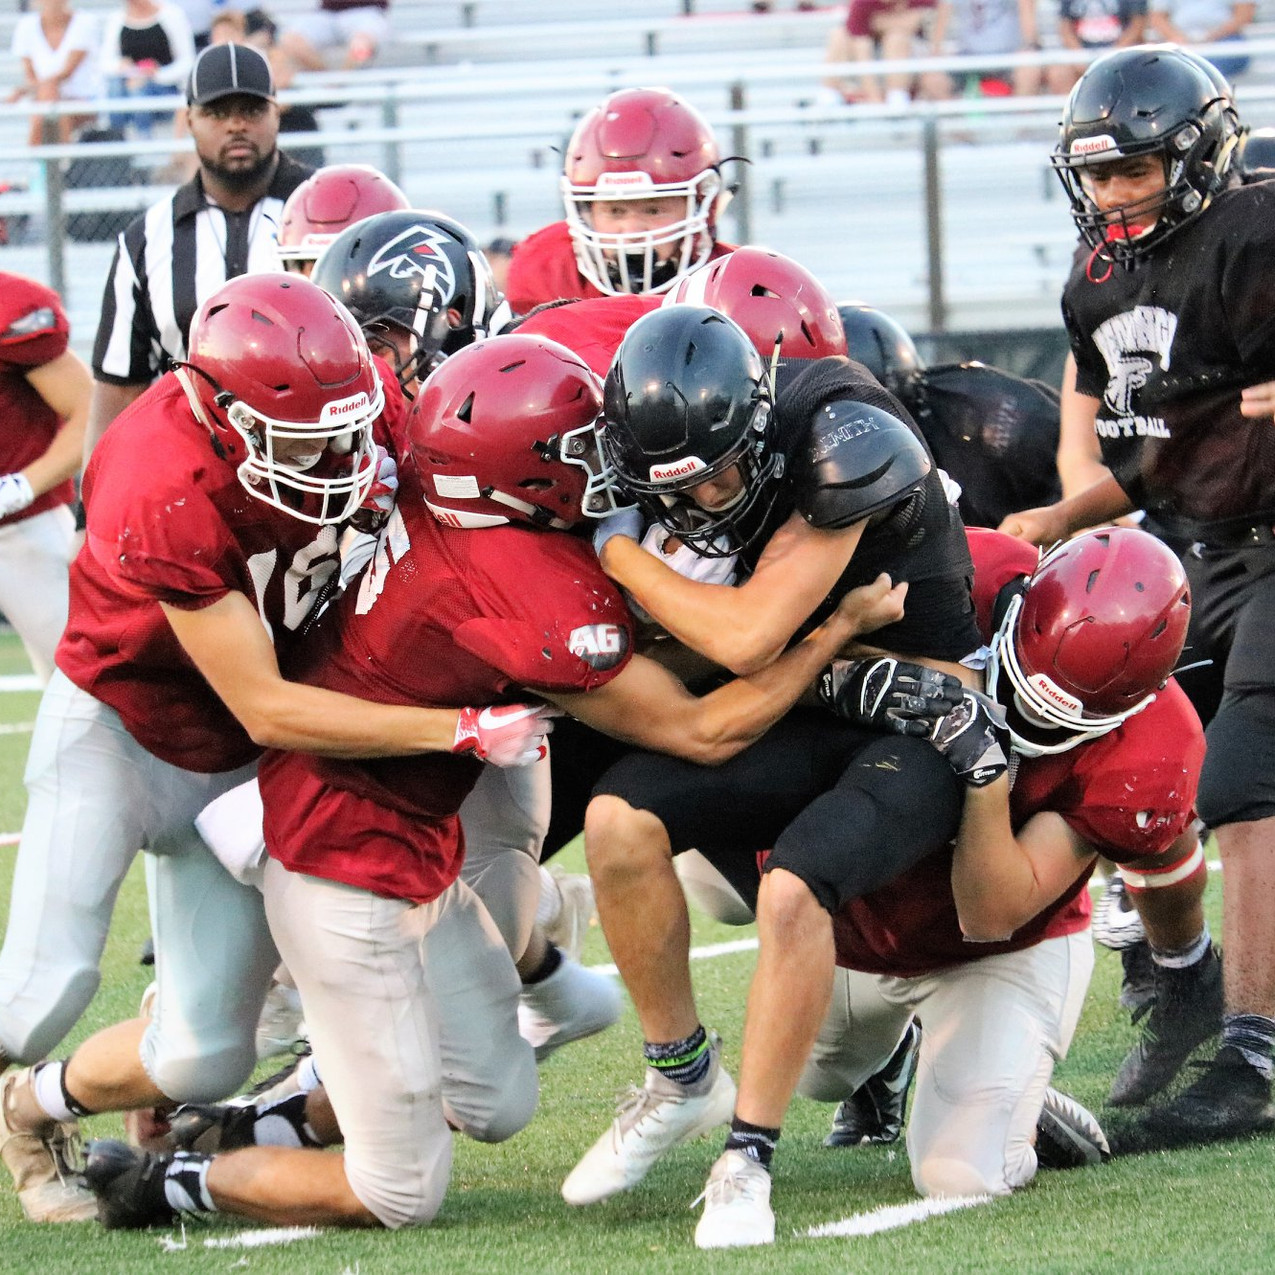 PHS Football Scrimmage 2018-2